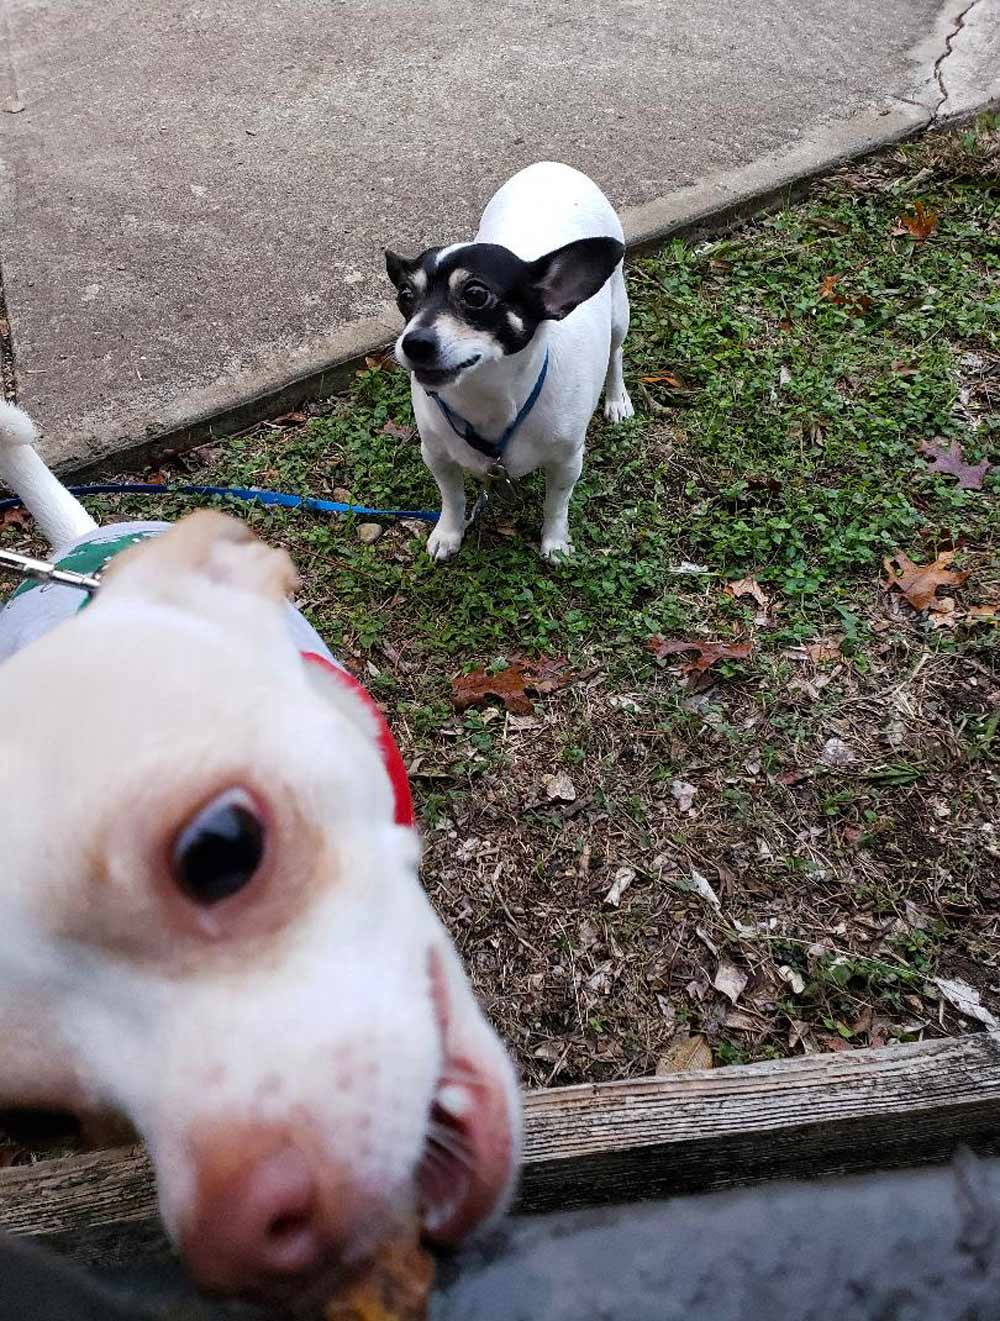 Meet LuLu (foreground) and Duncan. Both Rat Terriers, are taking turns receiving treats from the neighbor in the next complex. Very patient playmates!